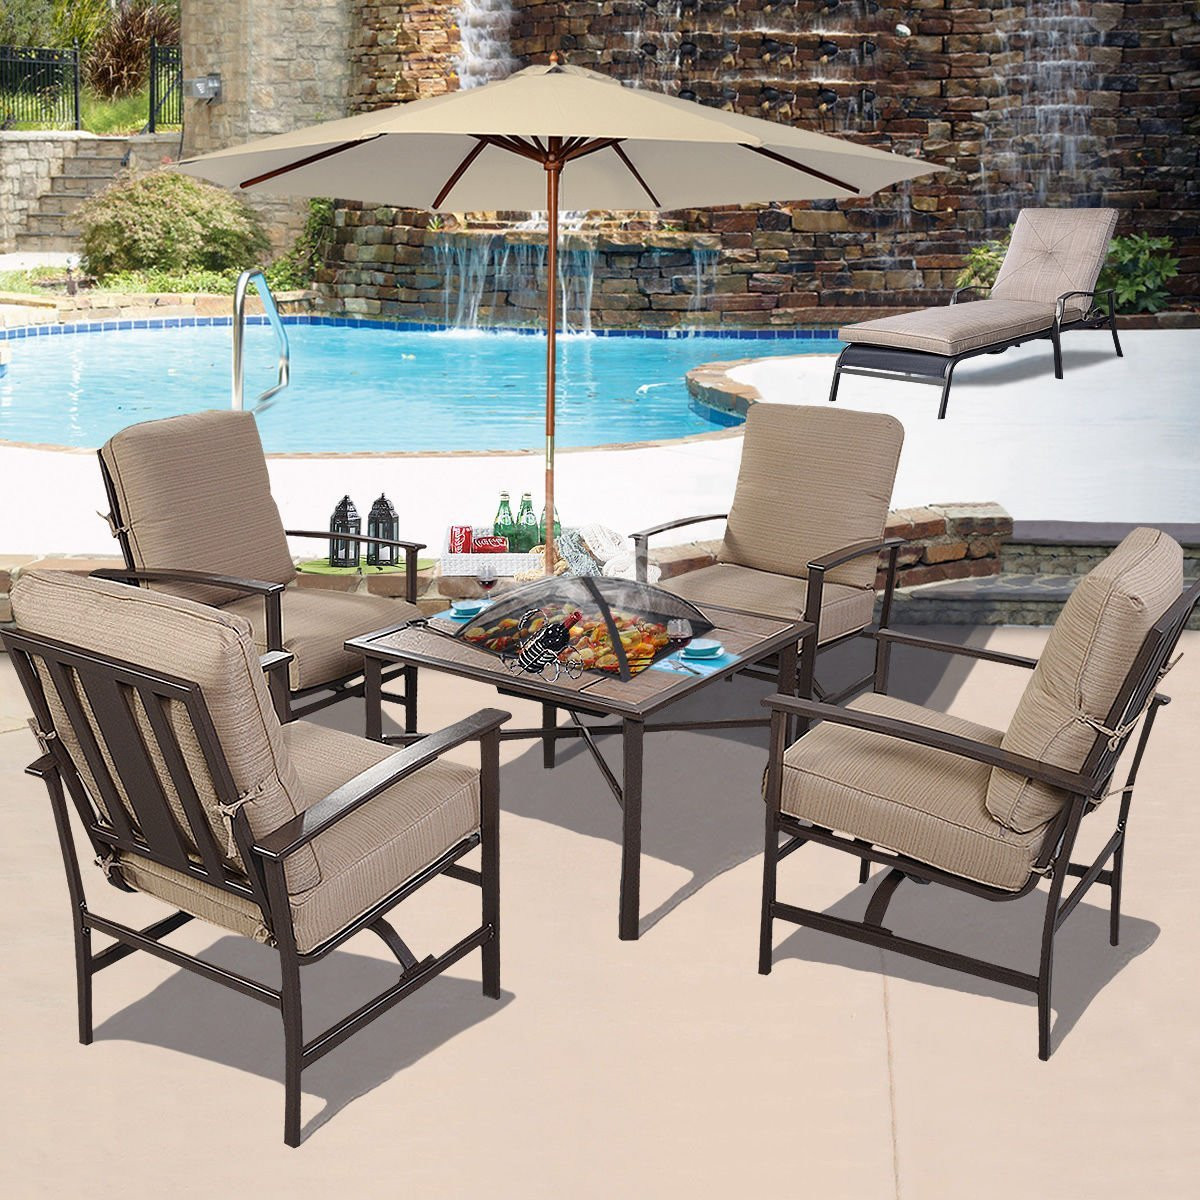 Propane Fire Pit Table Set  Gas Fire Pit Clearance Round Propane Table Dining Set With